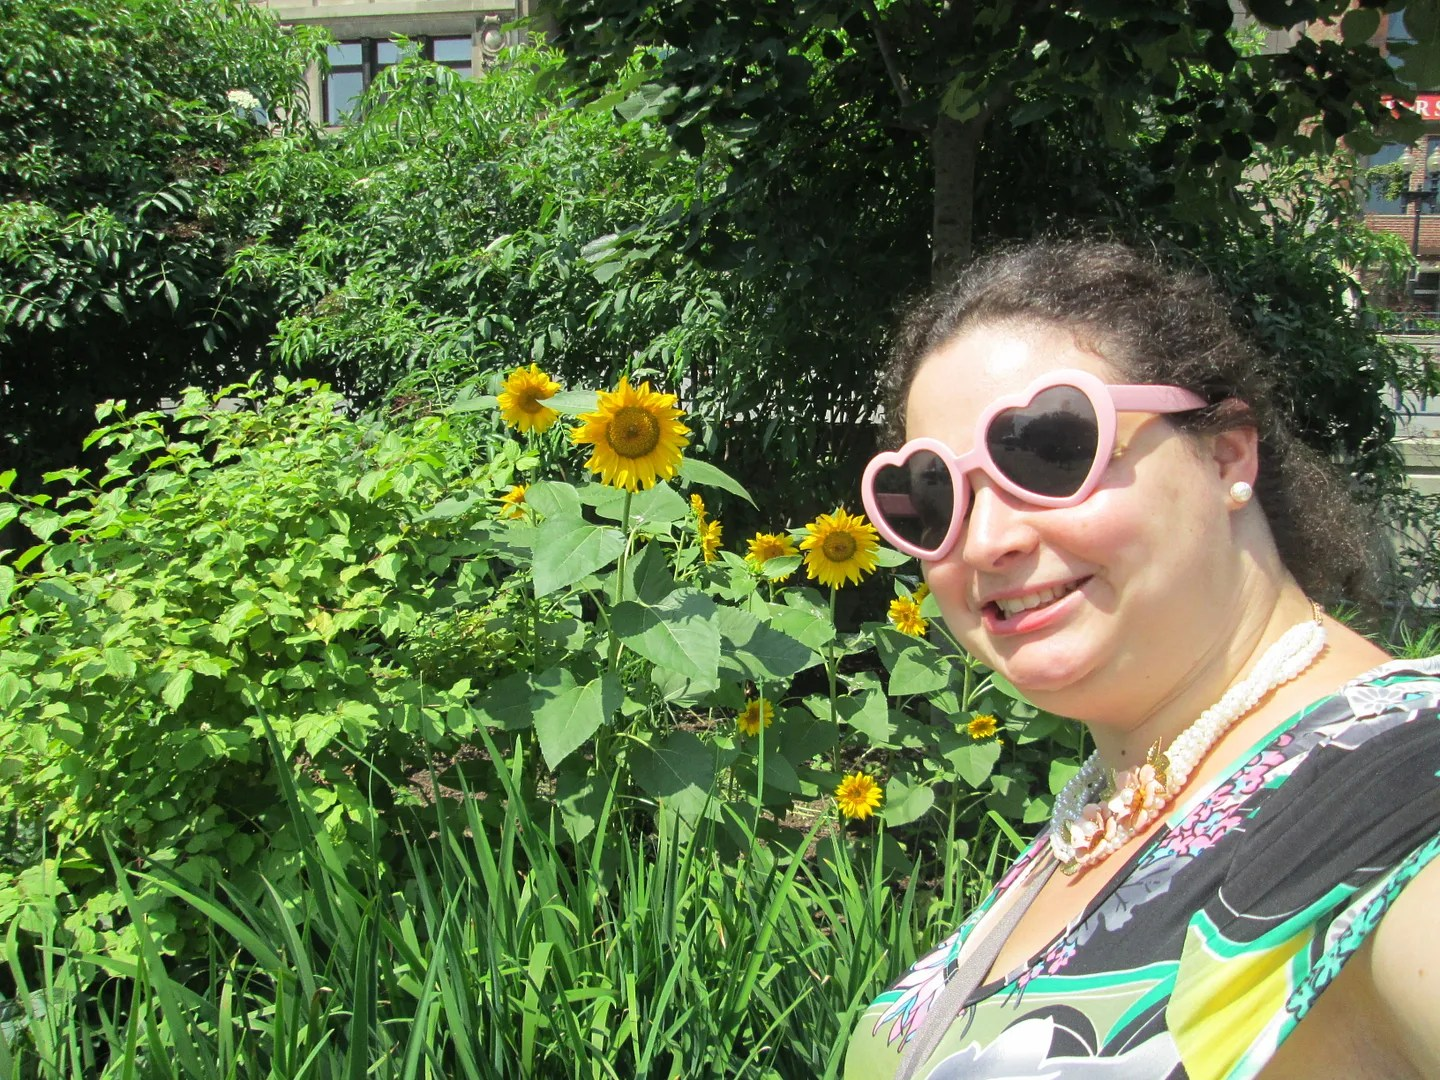 sunflower selfie with pink heart-shaped sunglasses